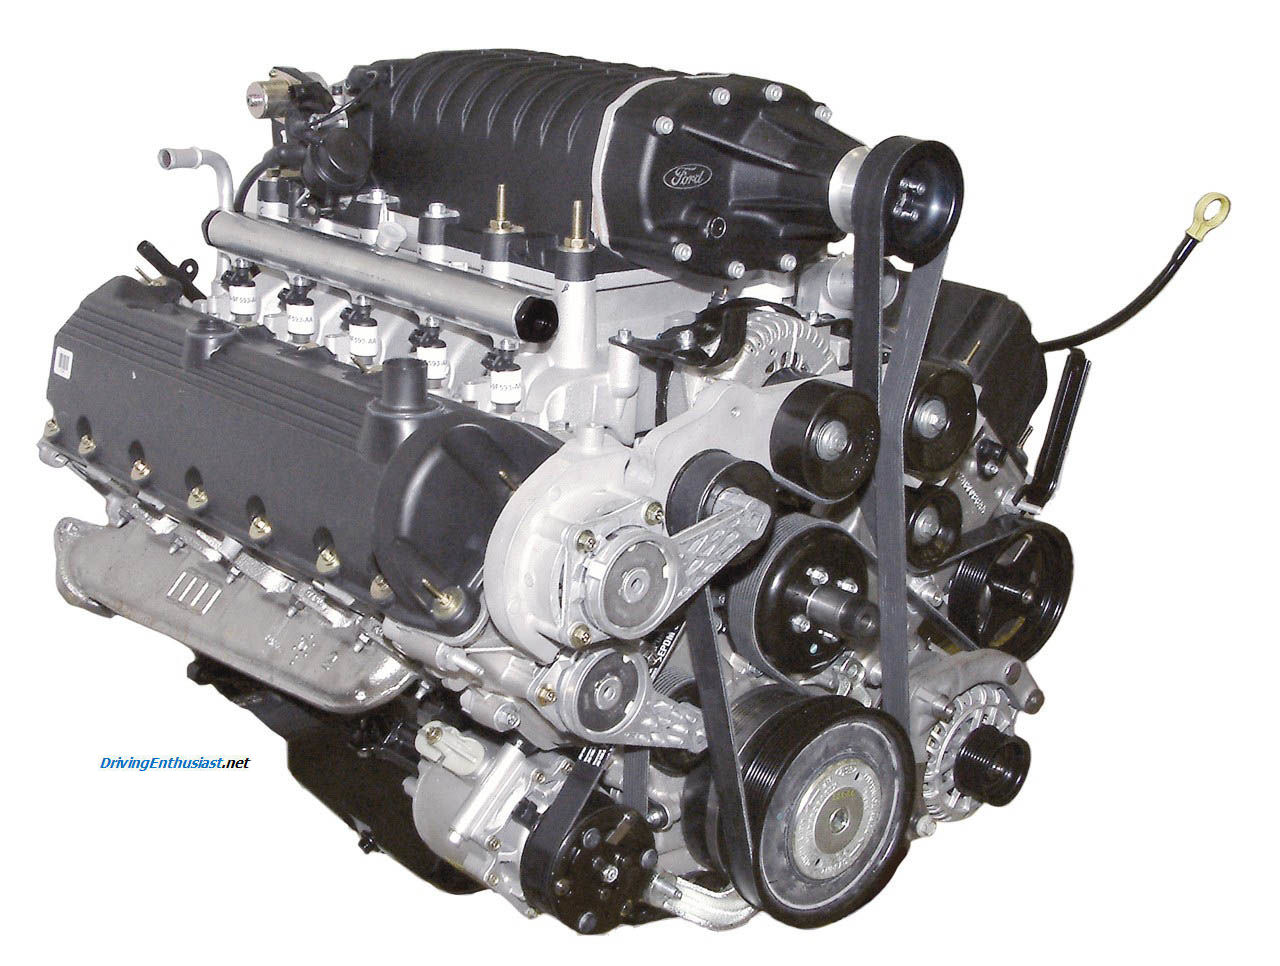 Ford supercharged V-10 hydrogen engine